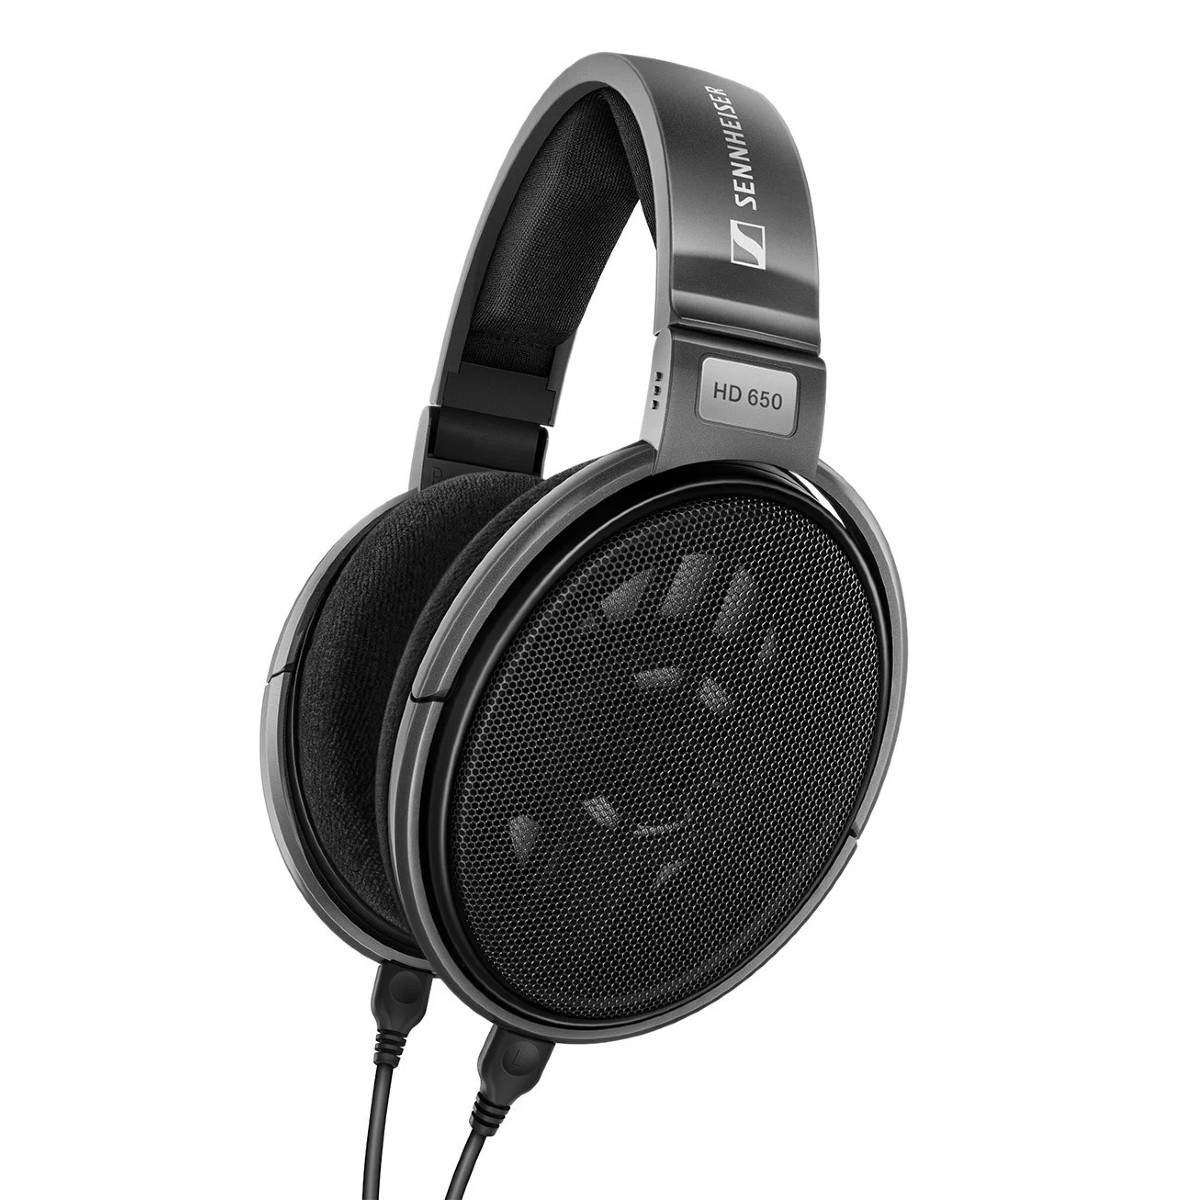 A great headphone for audiophile gamers.